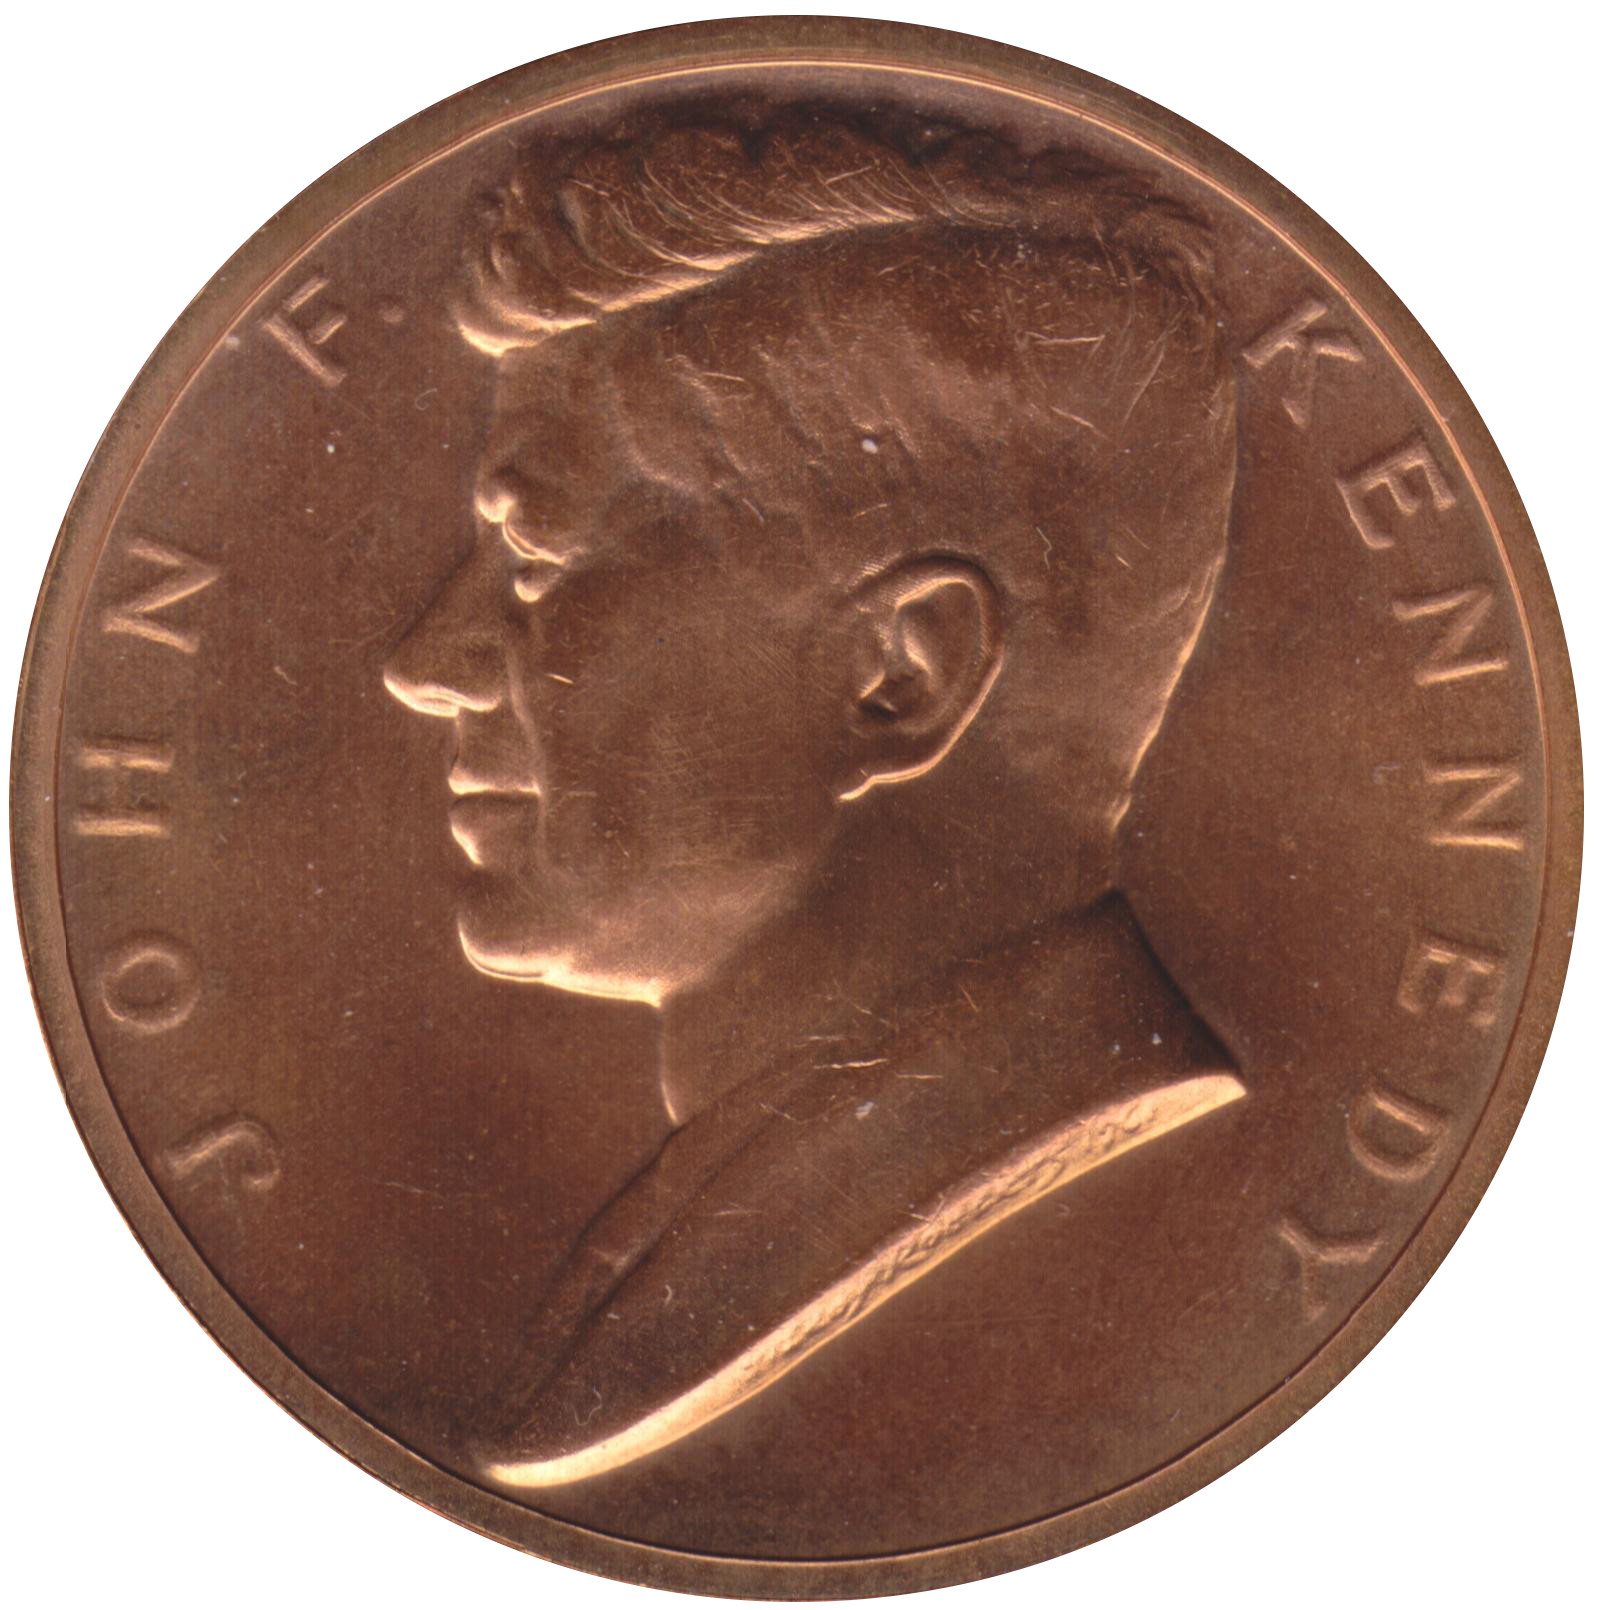 Obverse of Kennedy medal